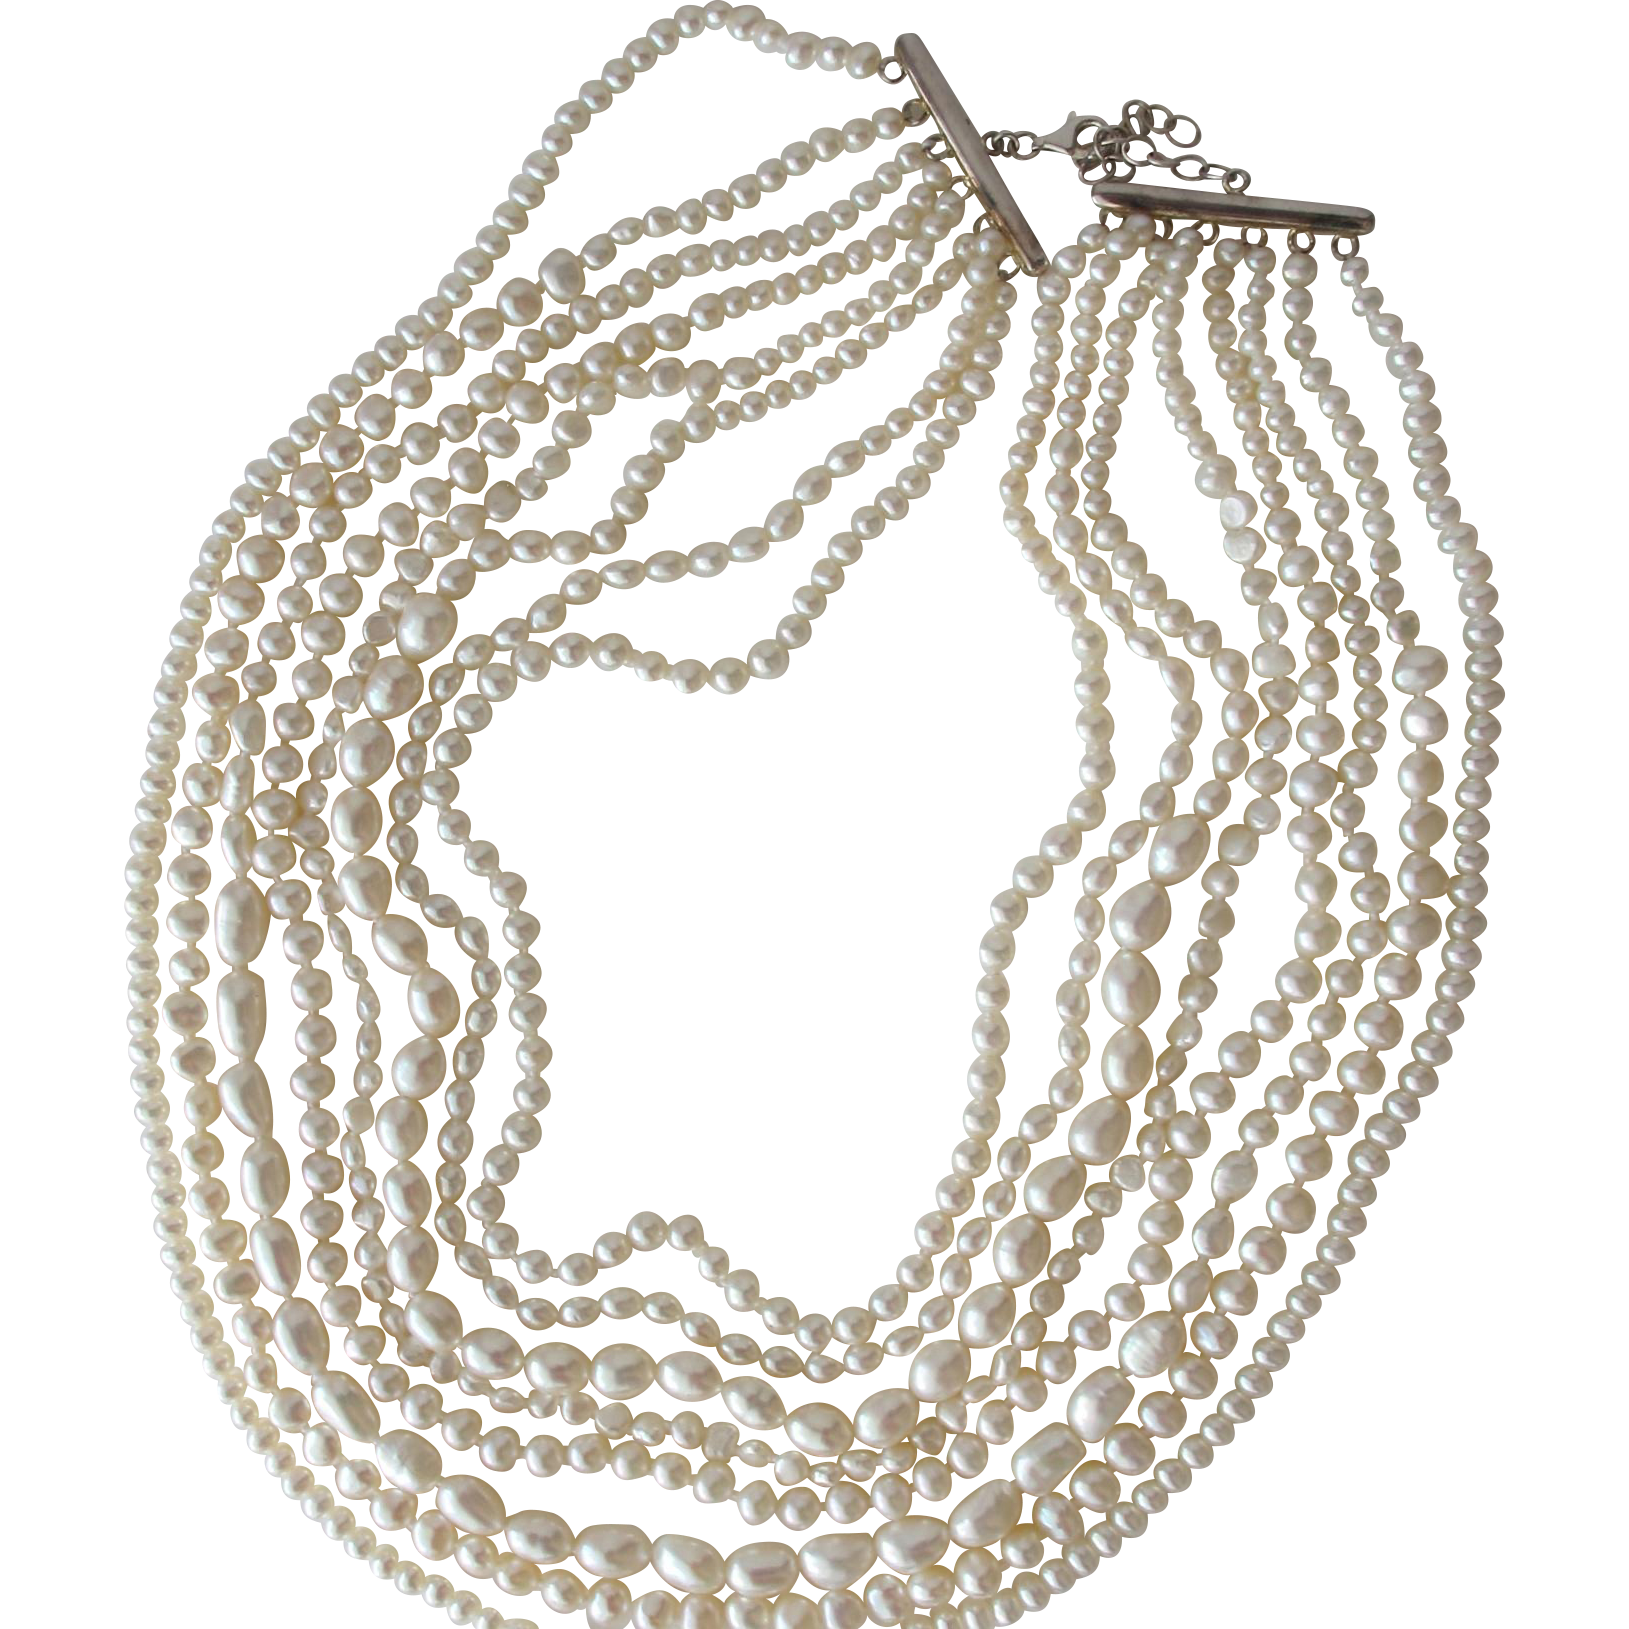 Cultured Pearl Necklace Eight Strands of Freshwater Pearls in Different Sizes Sterling Silver Clasp